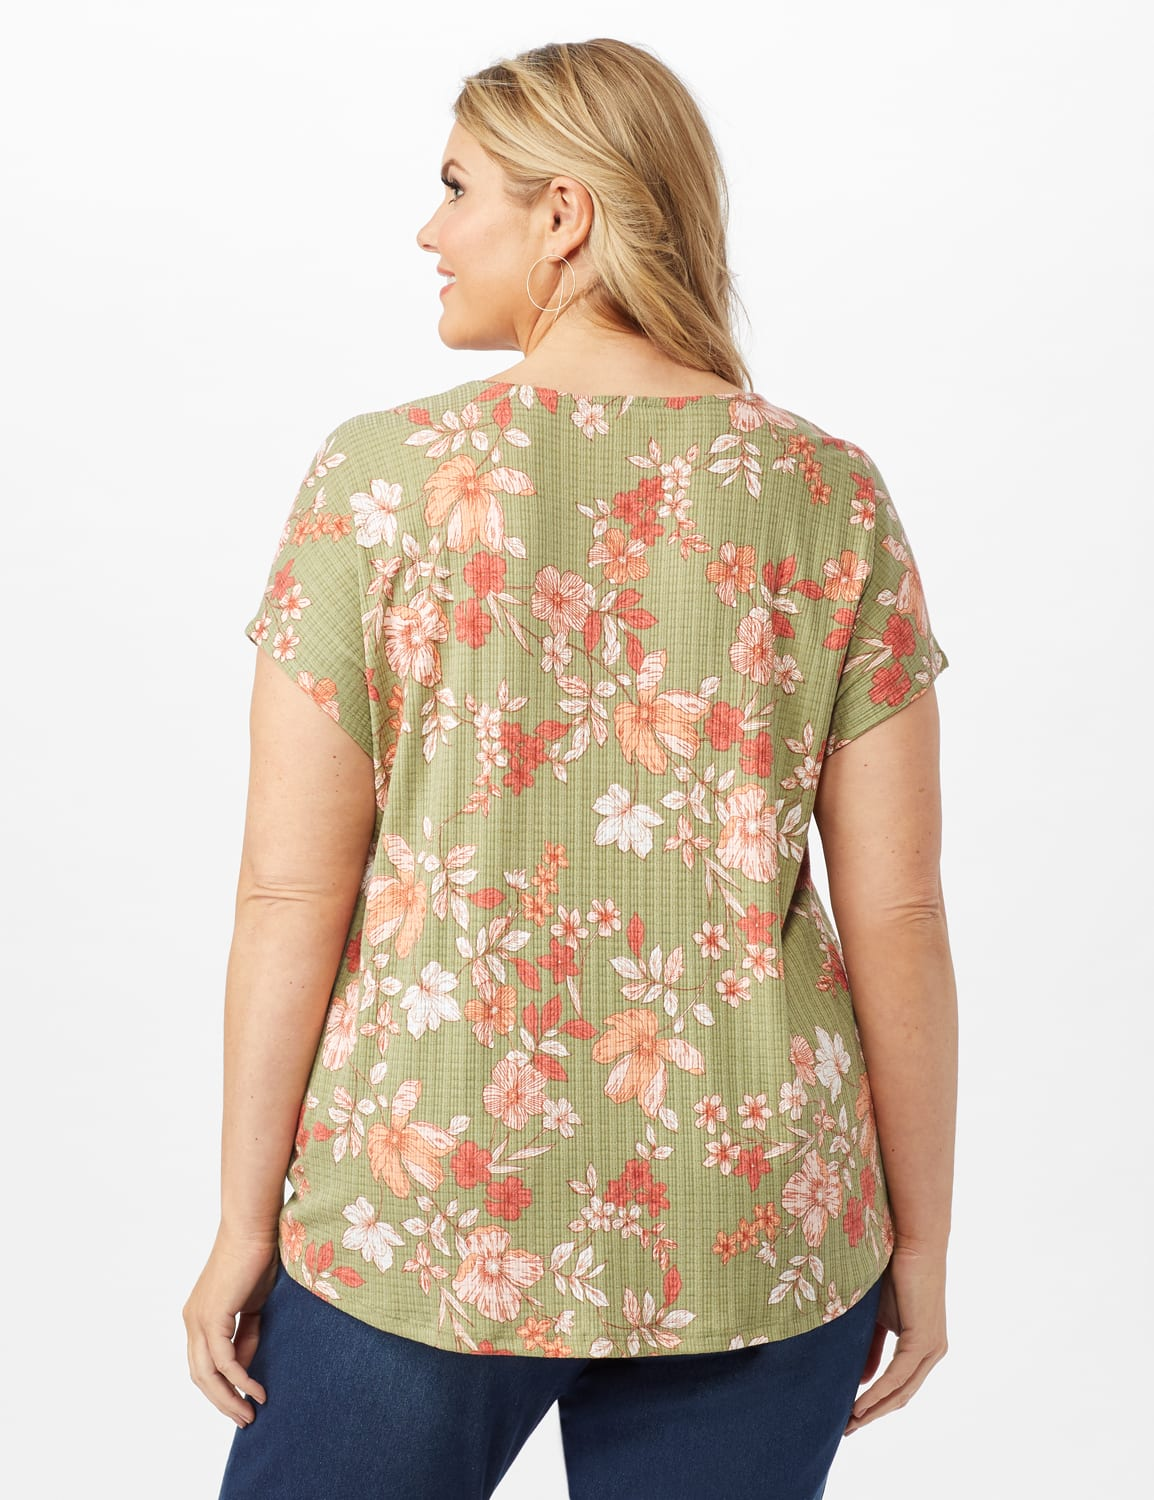 Twist Front Floral Knit Top - Oil Green - Back